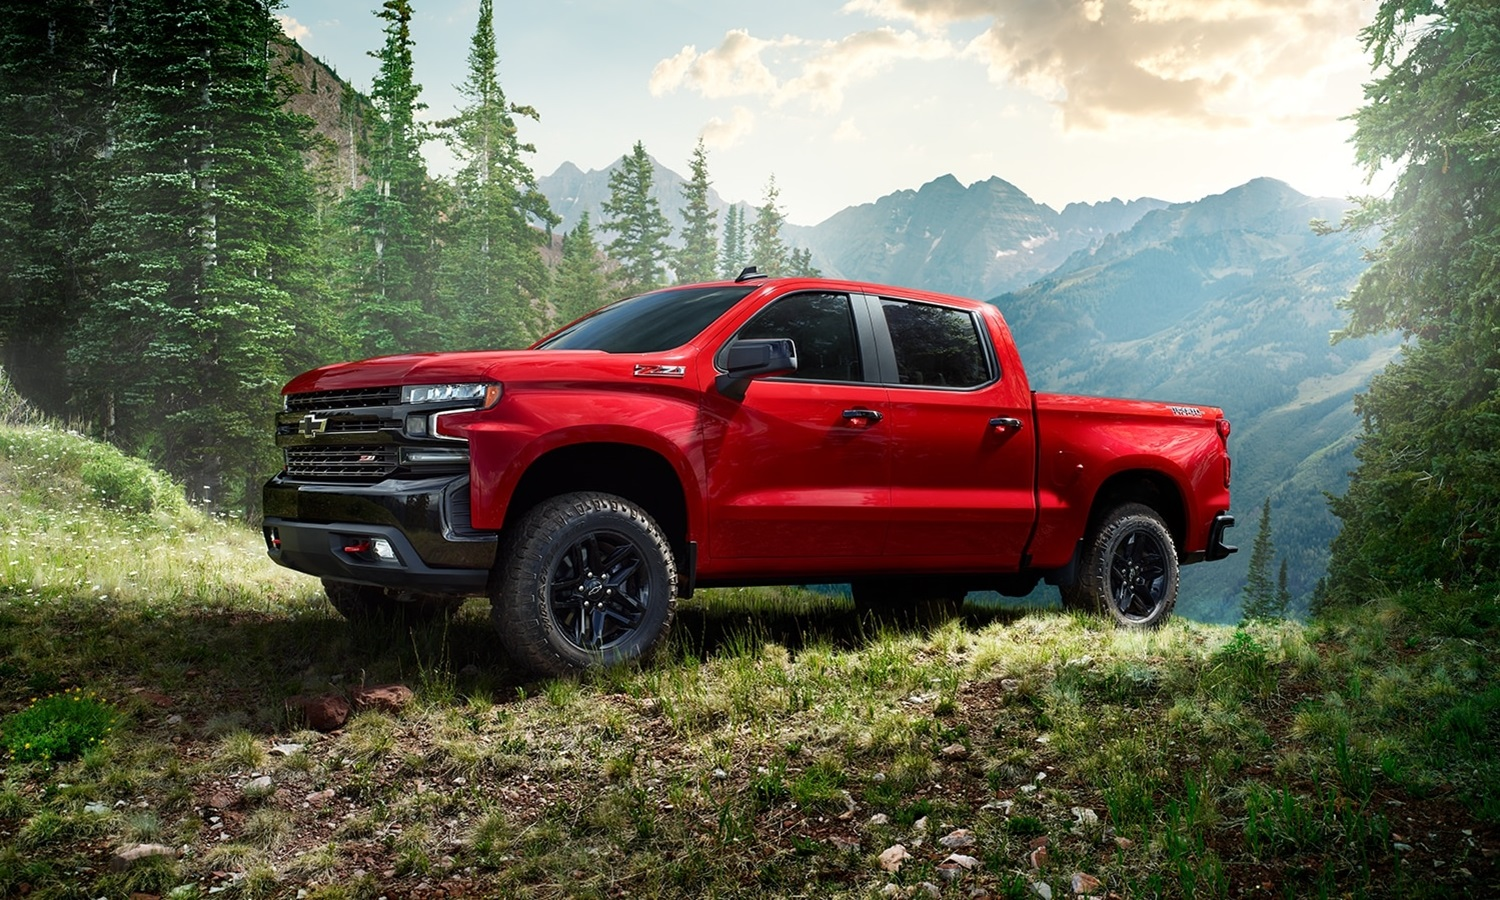 2022 Chevy Silverado Carharrt Edition 2500hd Lease Z71 Deals 3500 Forum